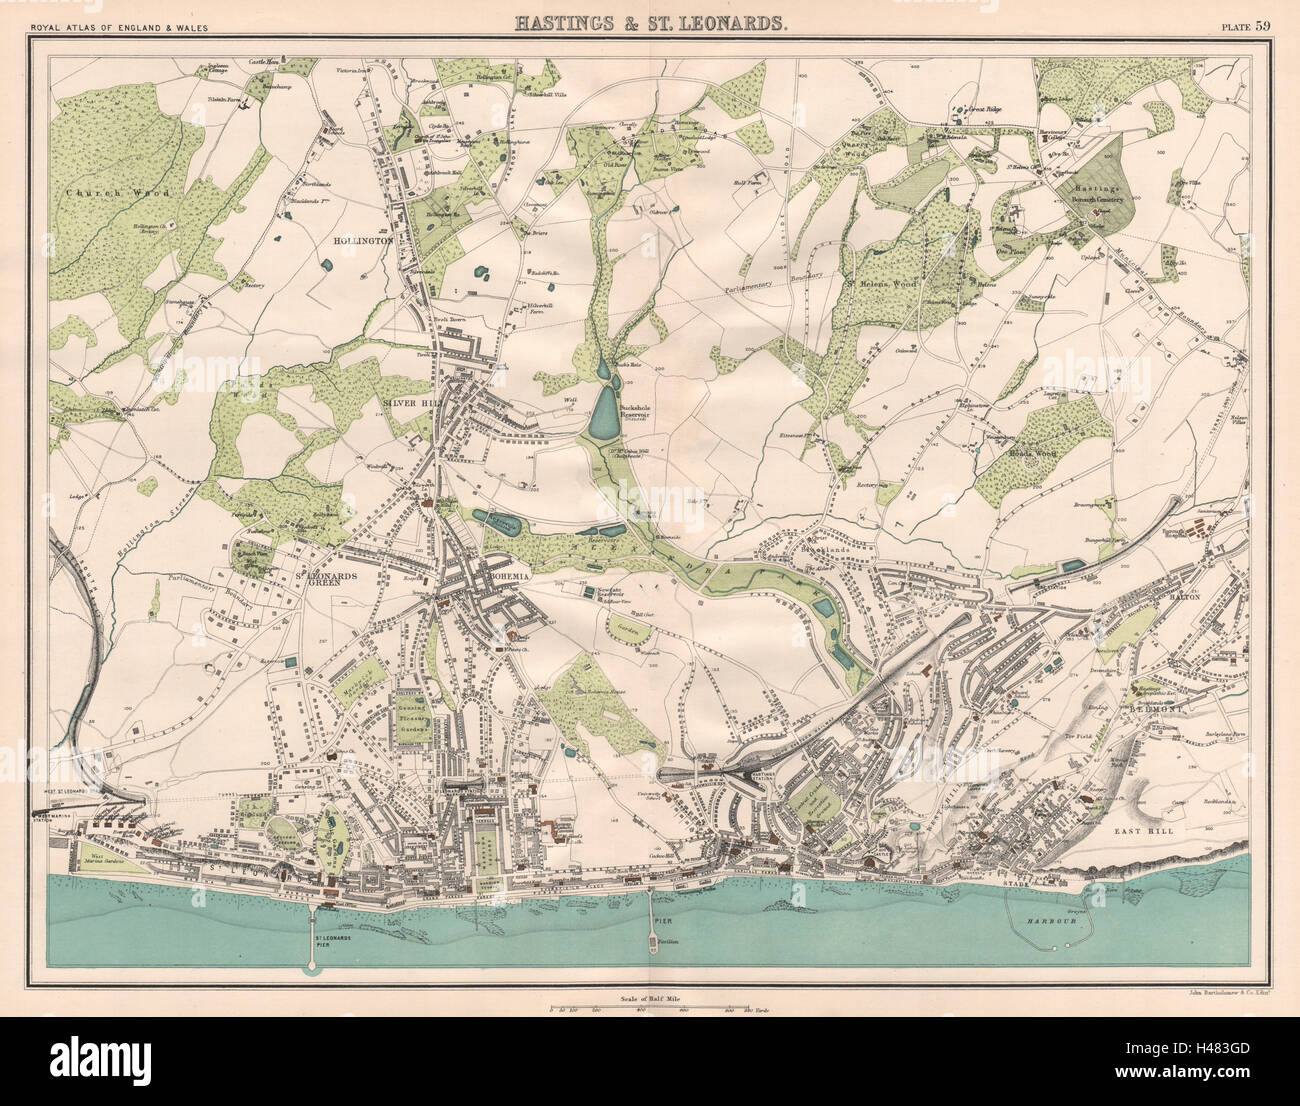 Map Of England Hastings.Hastings St Leonards Antique Town City Plans Bartholomew 1898